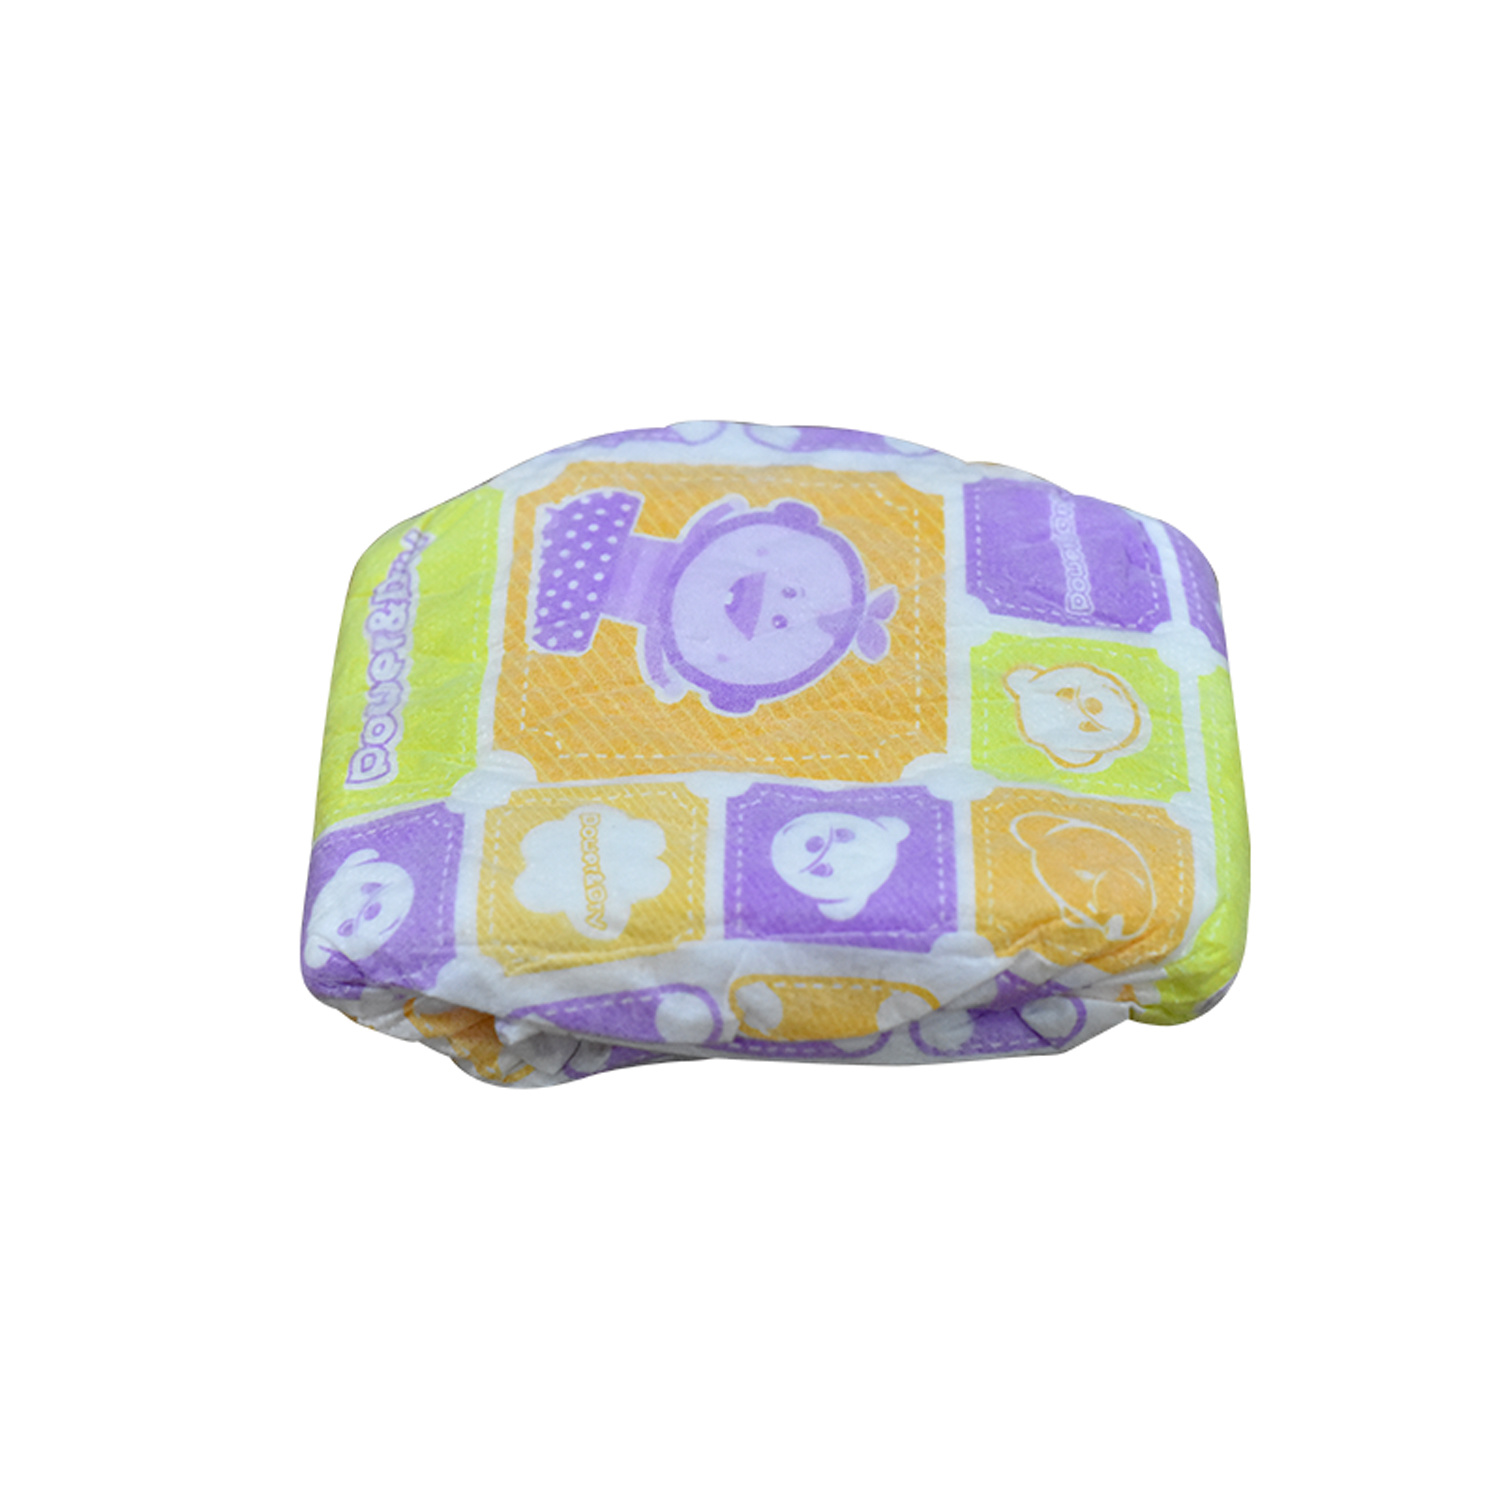 Adult Diaper with Magic Tape Hold Breathable Dry Surface